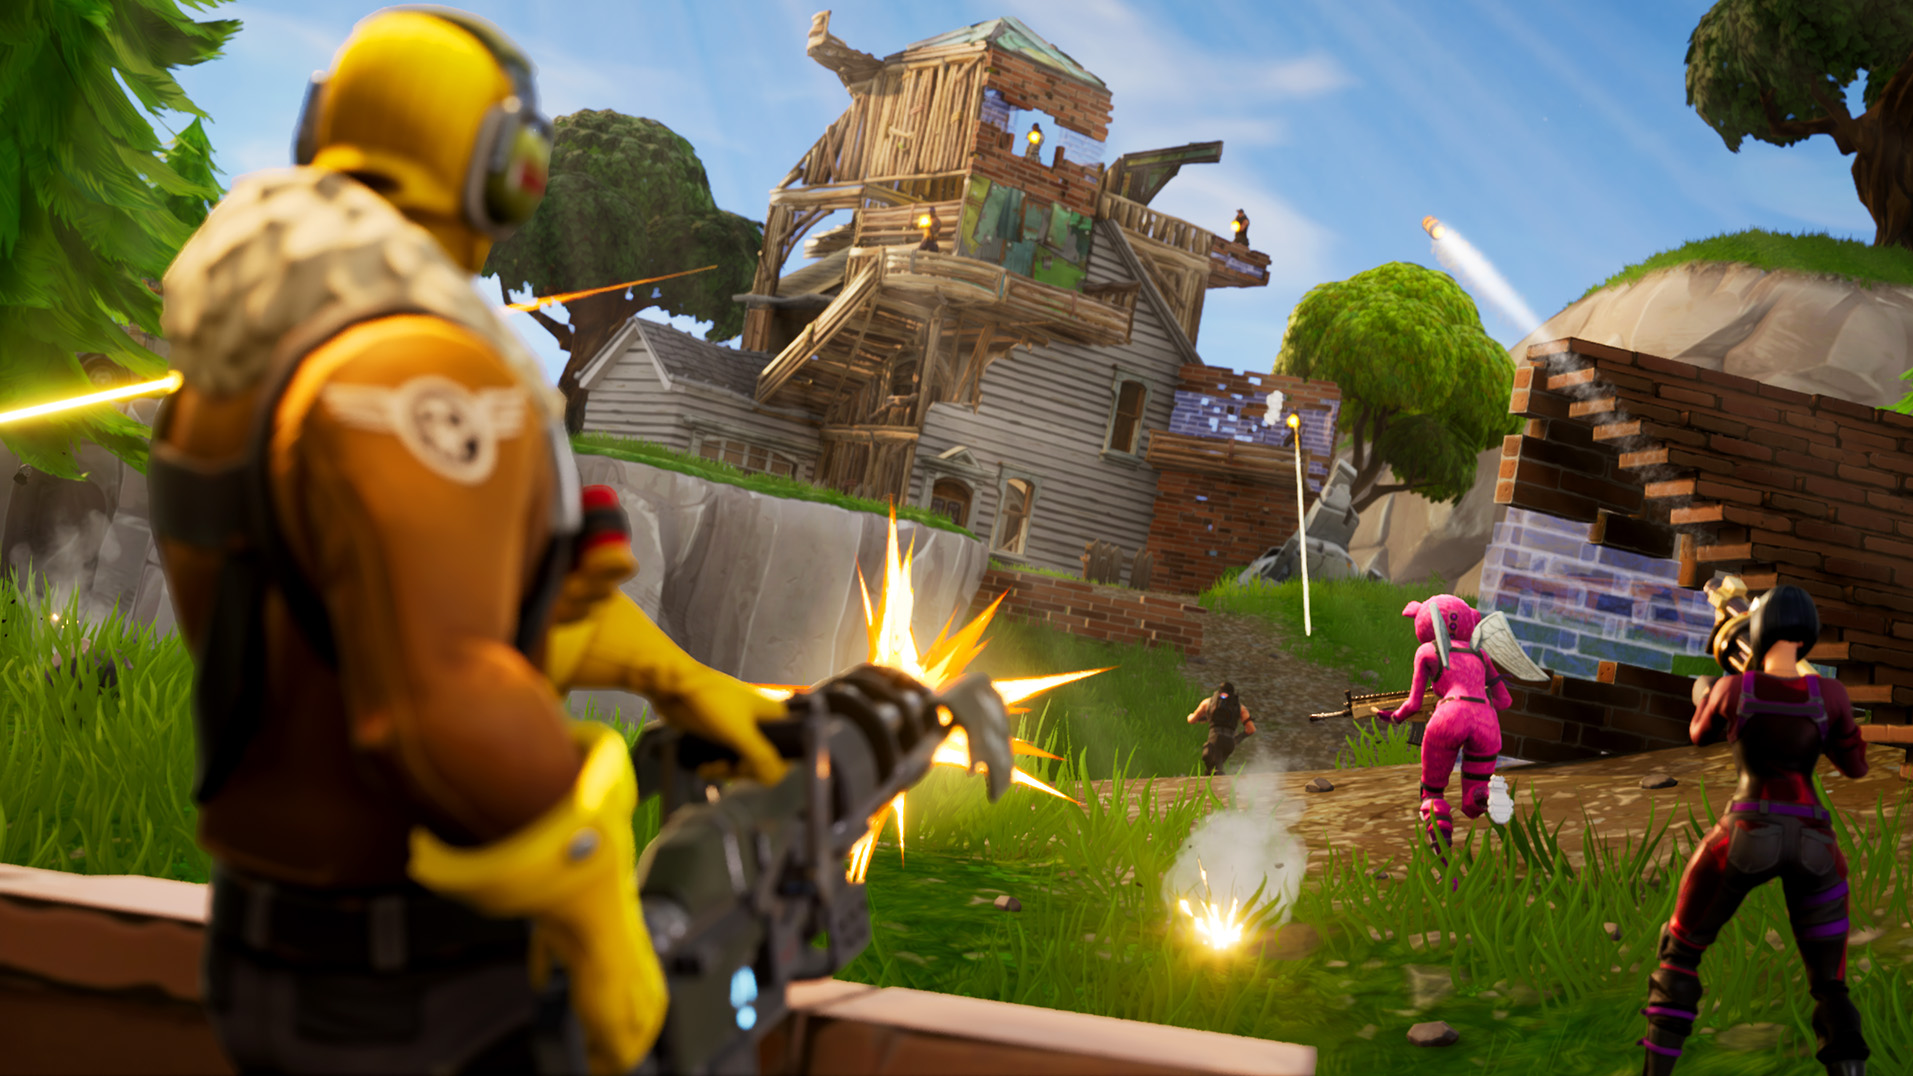 Fortnite Battle Royale is actually a game mode for the Fortnite game.